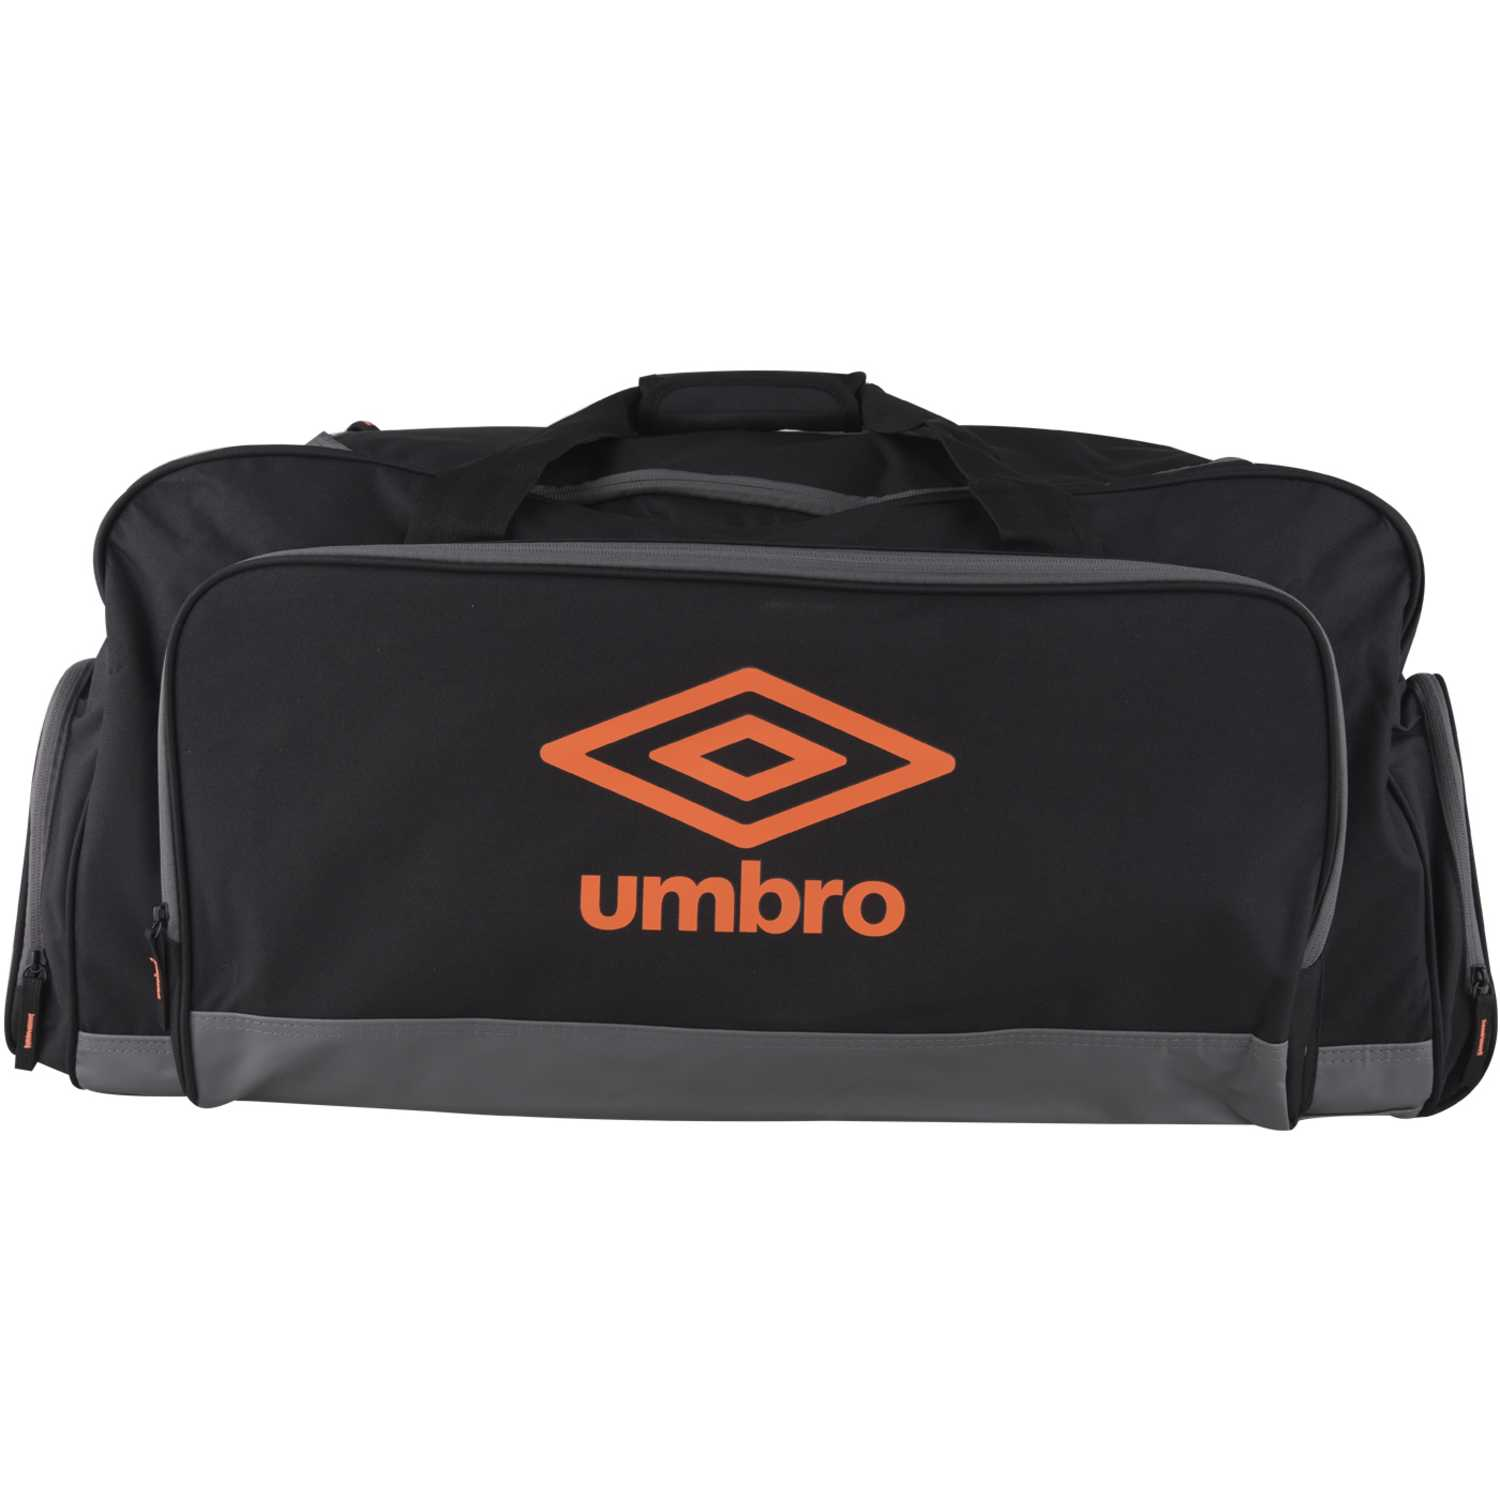 Maletin Deportivo de Hombre Umbro Gris oscuro large holdall